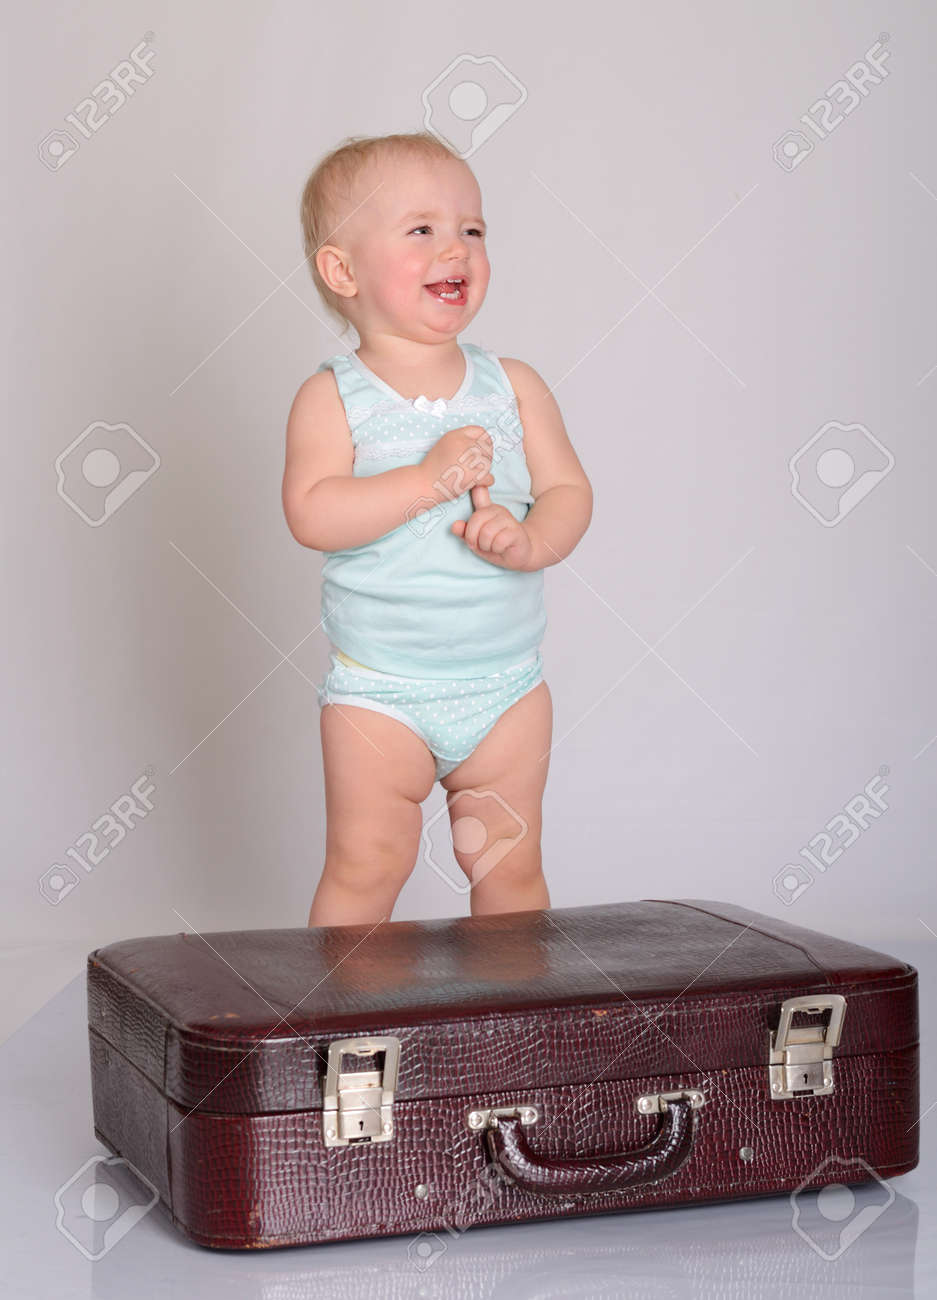 cute baby girl playing with suitcase on grey background Stock Photo - 18124670